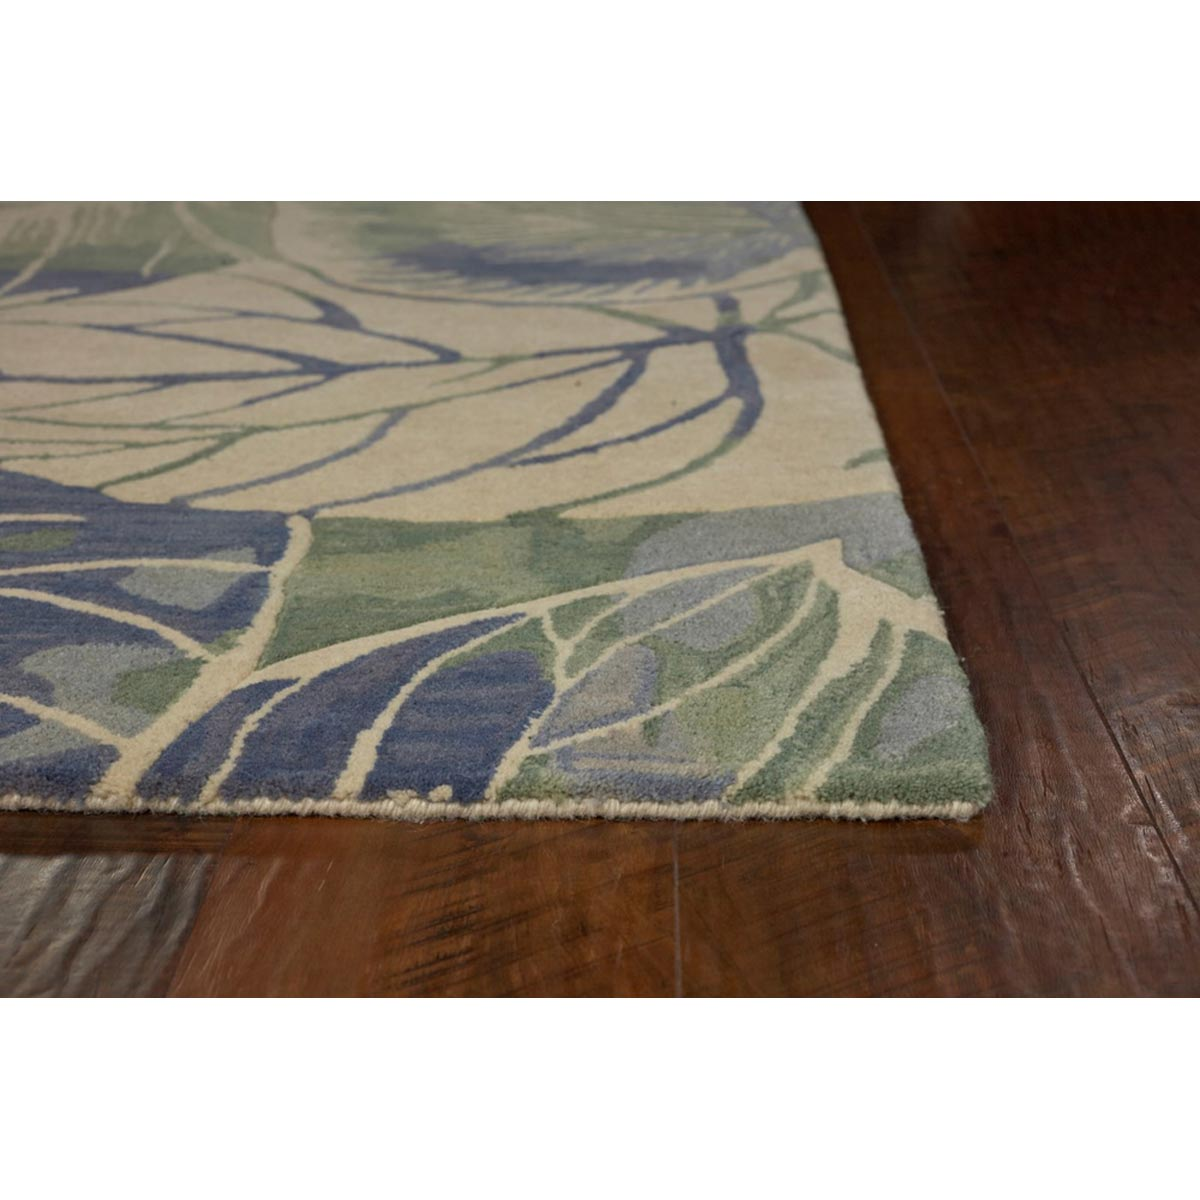 KAS 5 ft. 3 in. x 8 ft. 3 in. Sparta Blue/Green Silhouette Area Rug